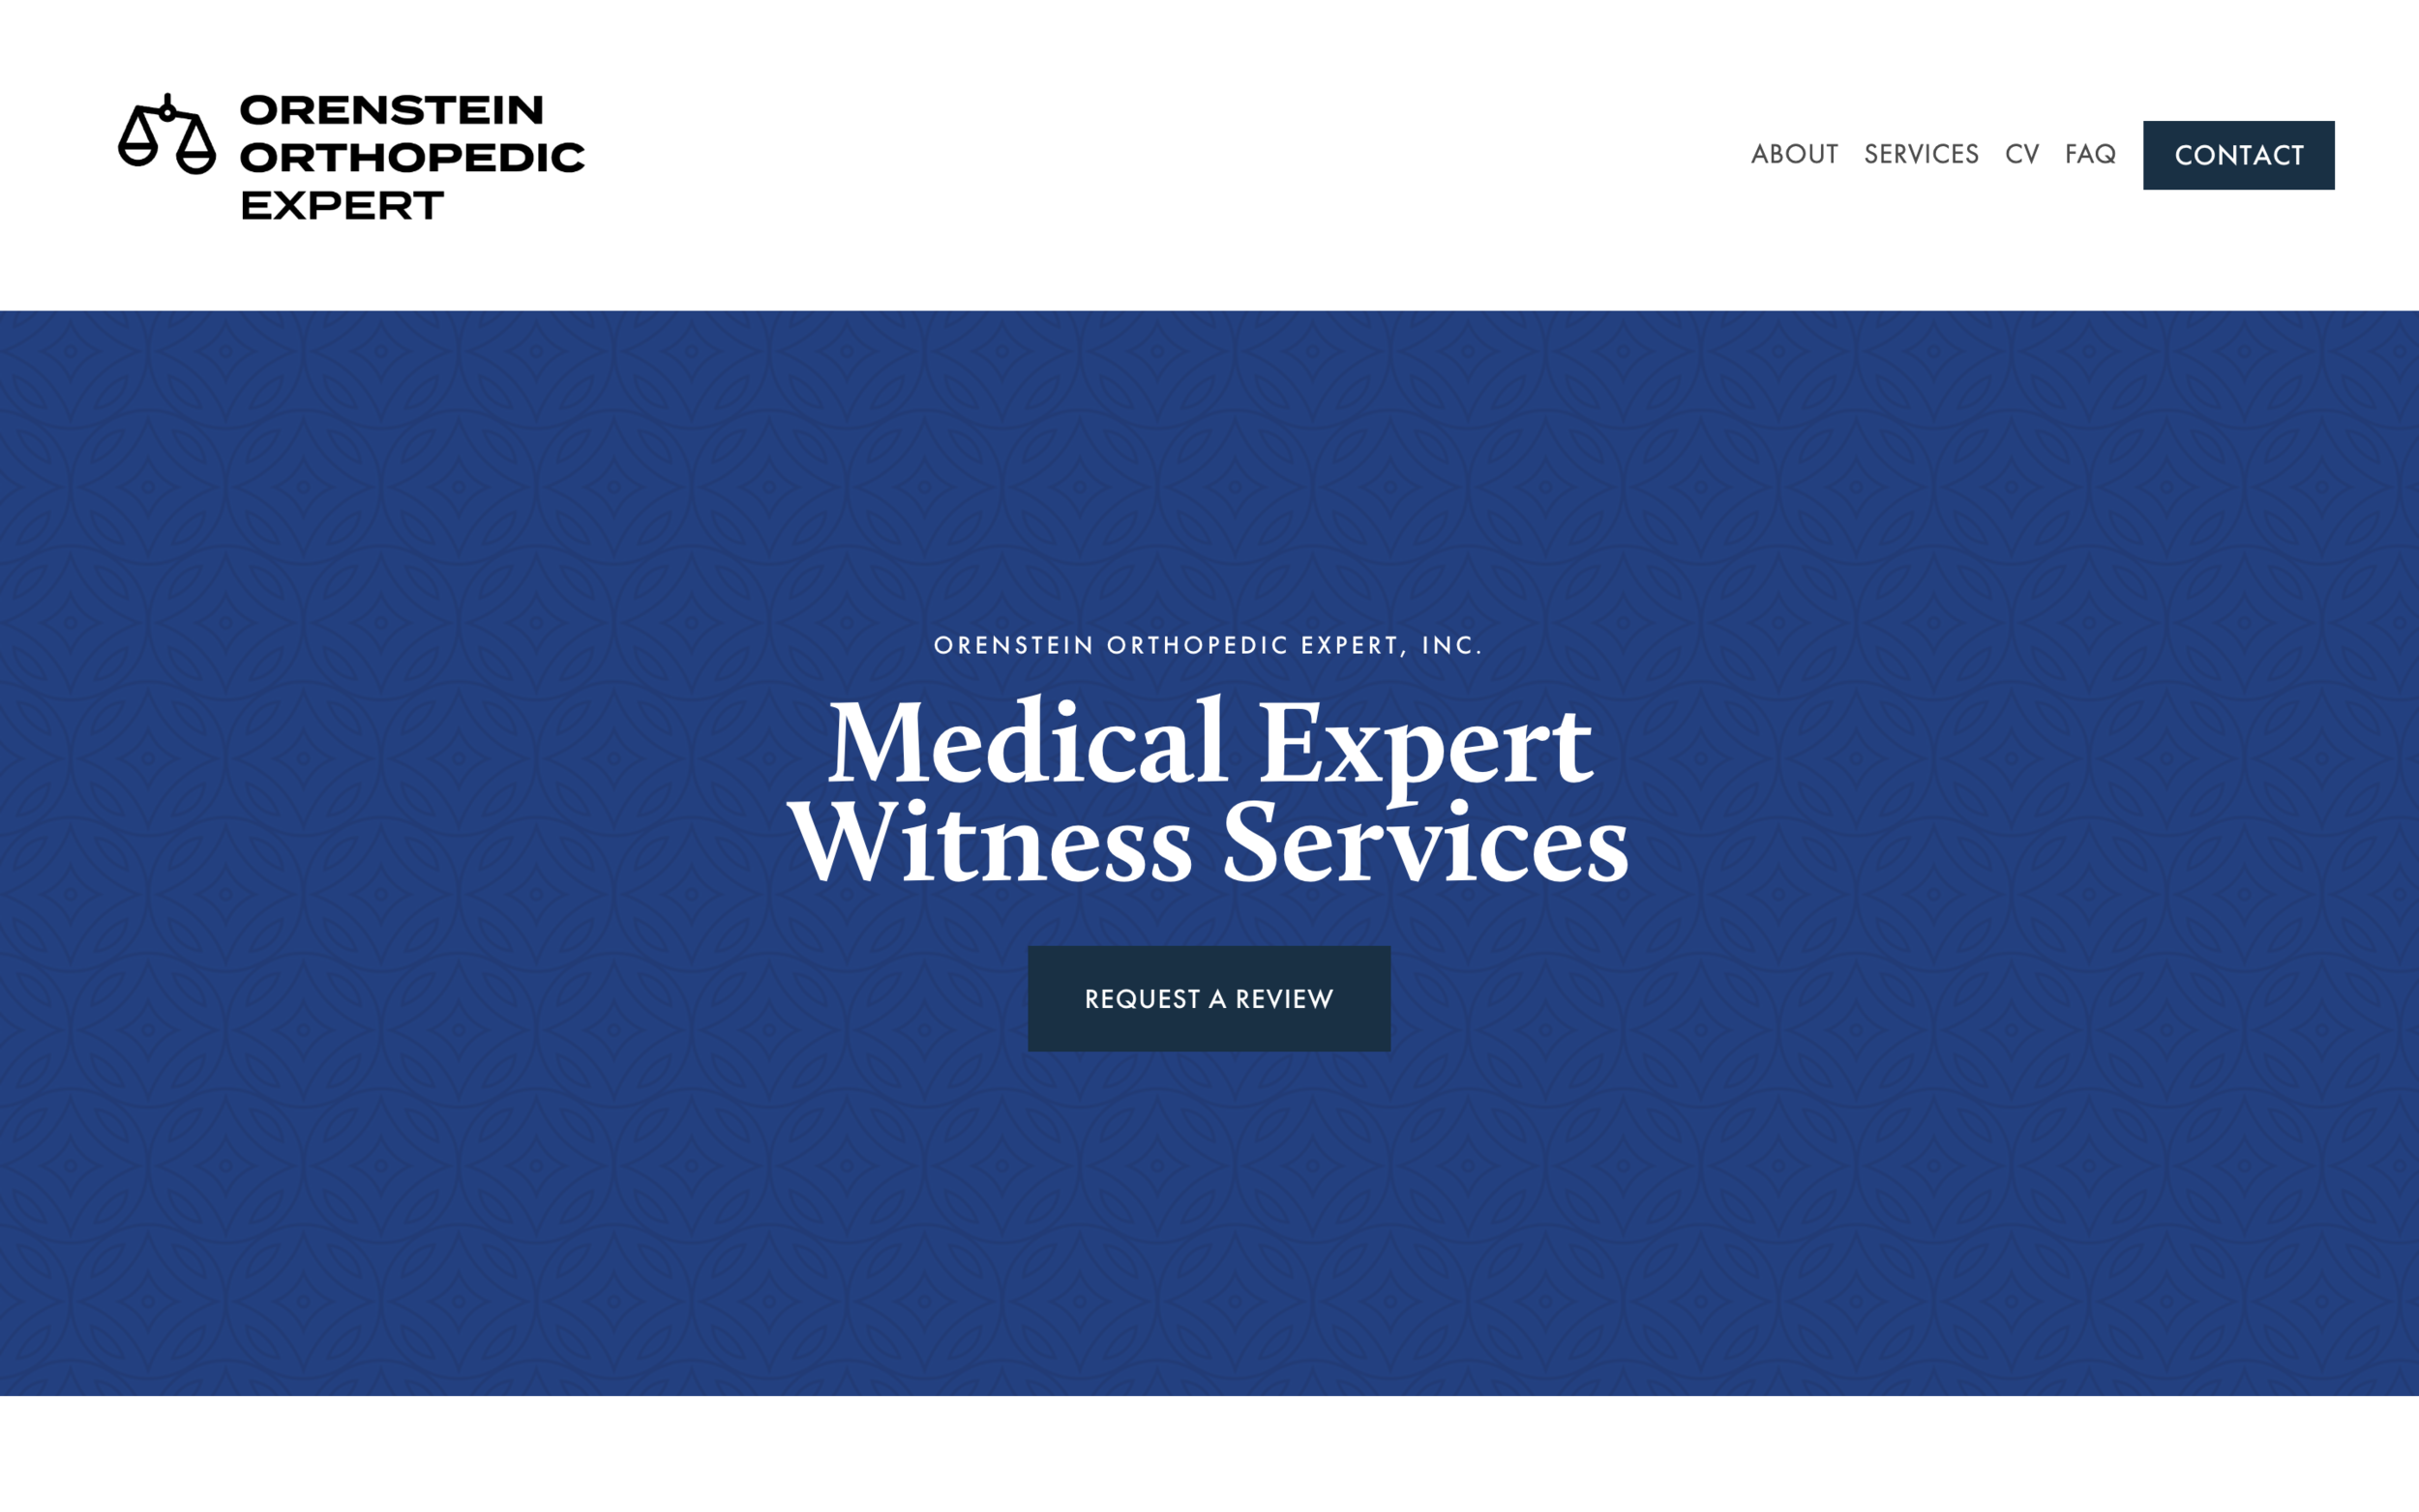 orensteinorthopedicexpert.com - Medical Expert Squarespace Website BuildOrenstein Orthopedic Expert needed a professional and clean Squarespace website. This custom website is informative, easy to digest and fully responsive.